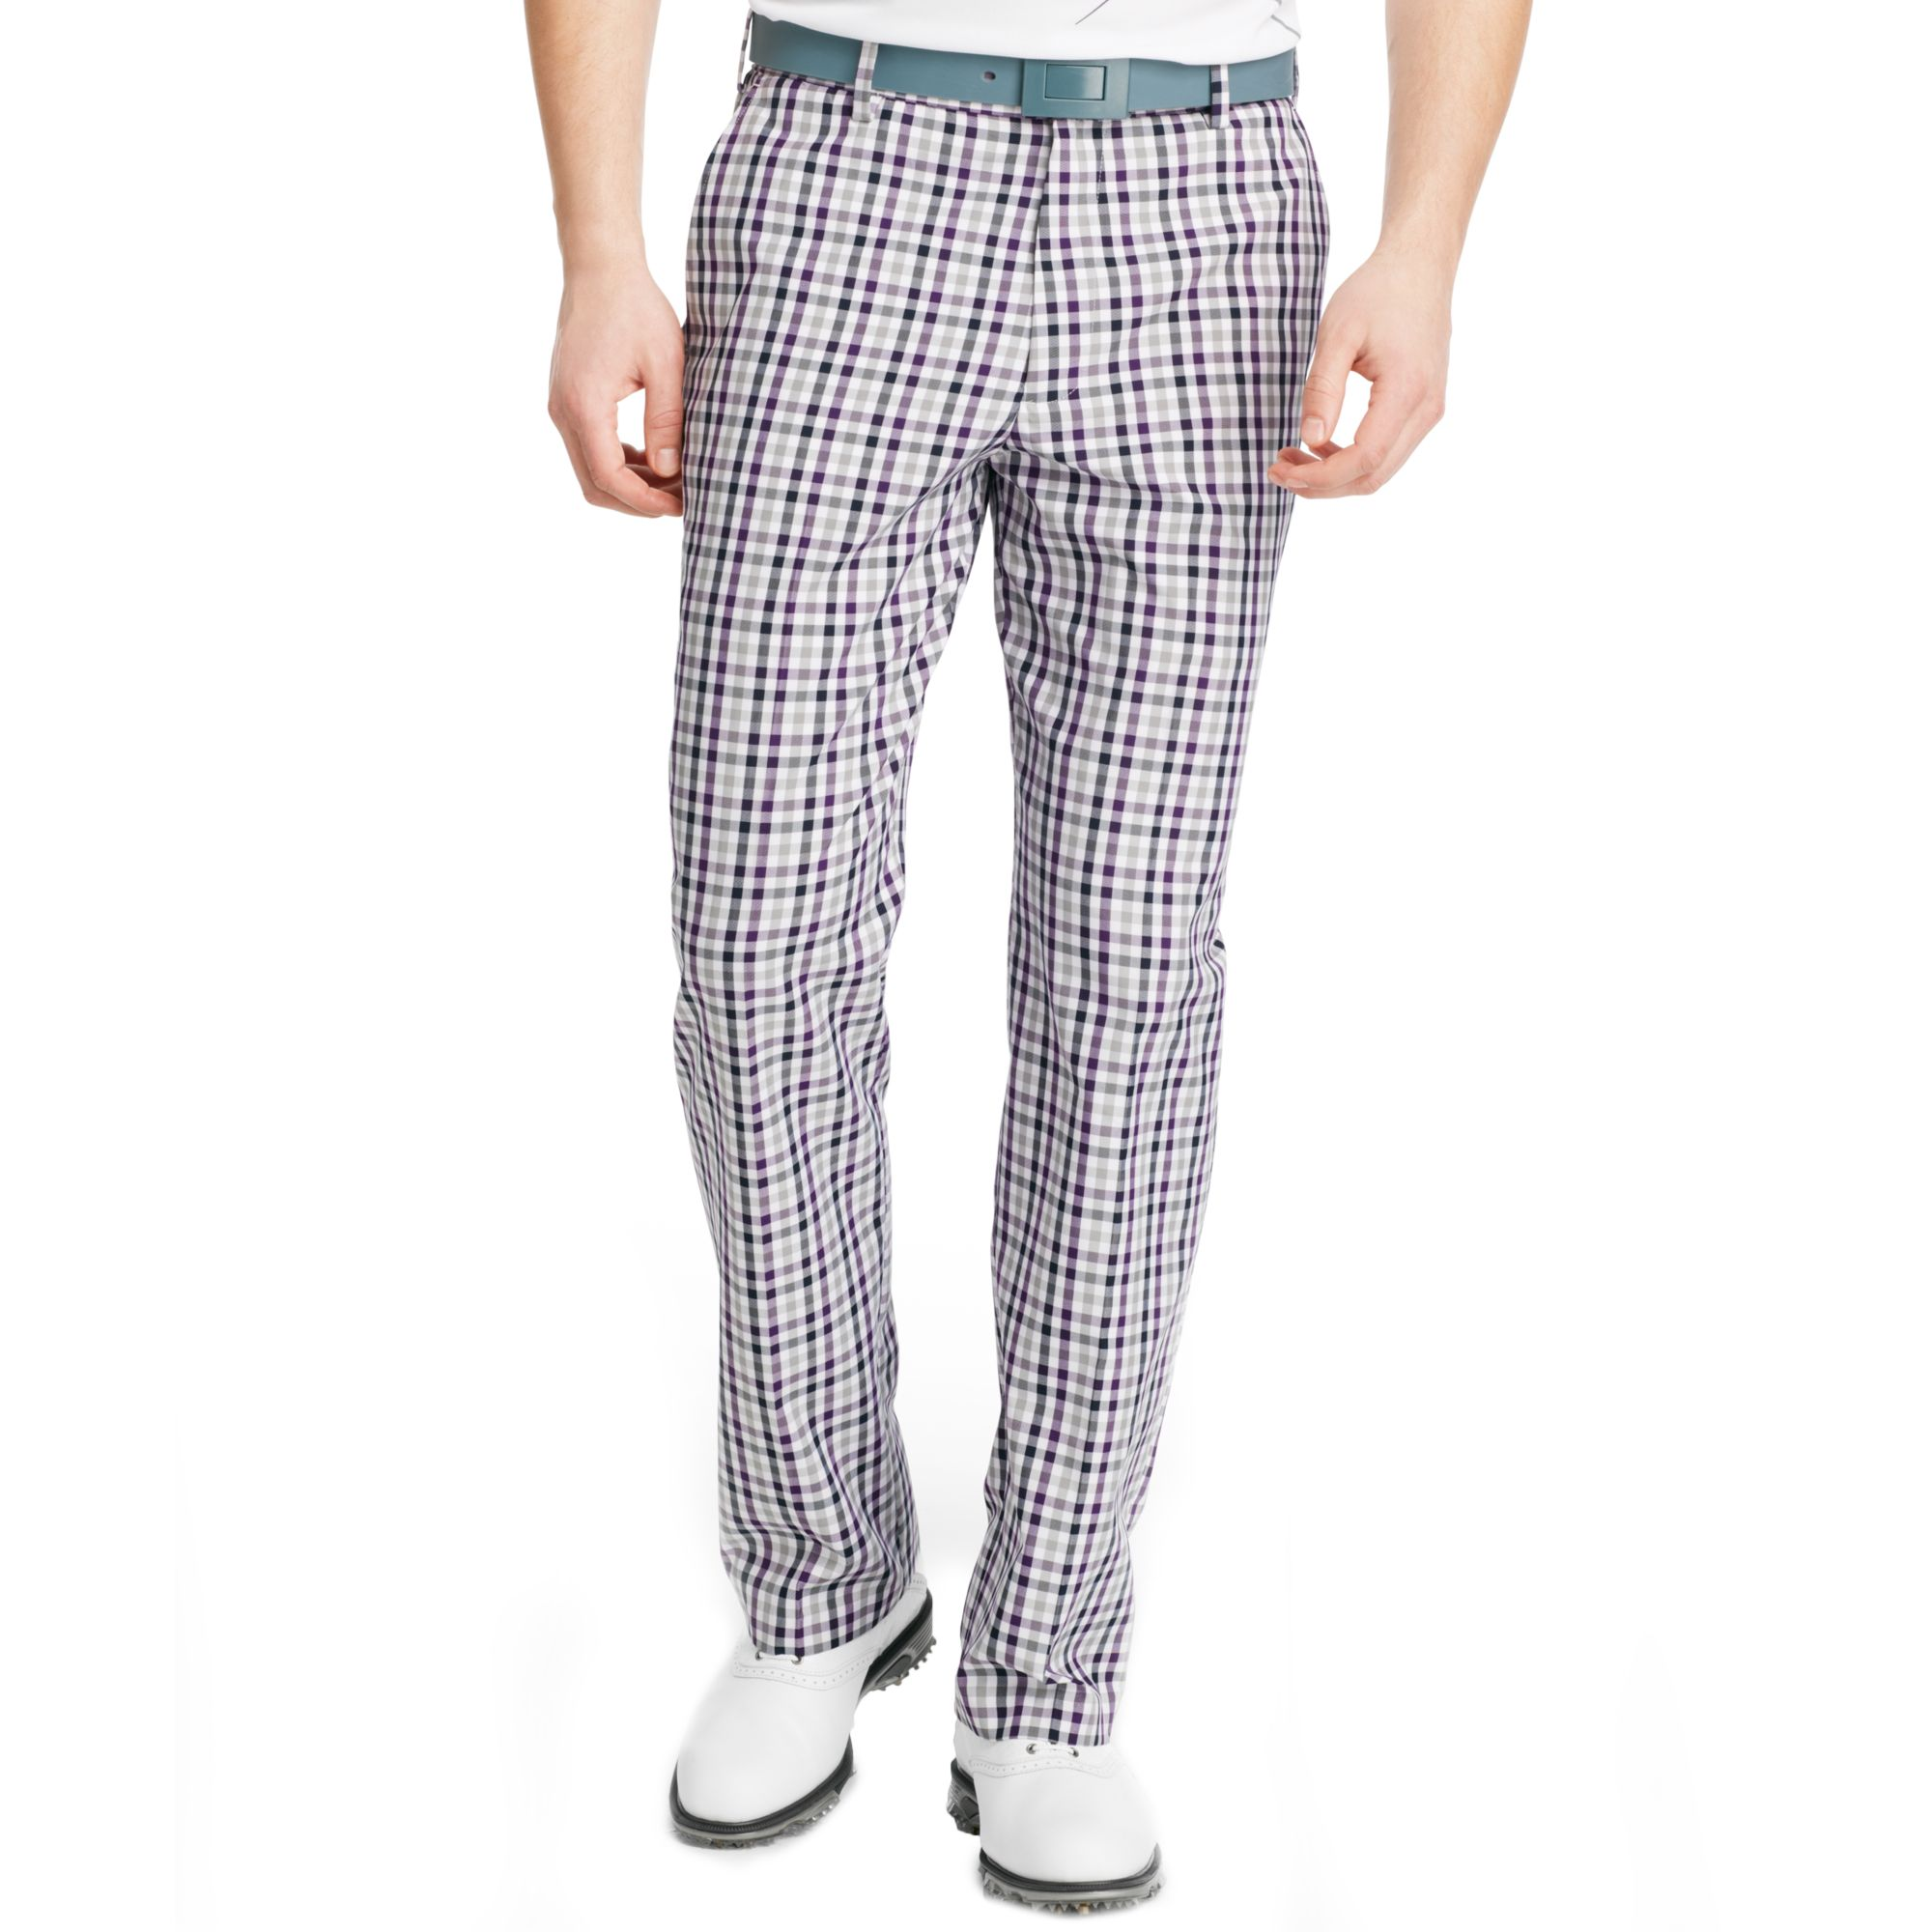 Izod Izod Golf Pants Flat Front Fancy Plaid Pants for Men | Lyst